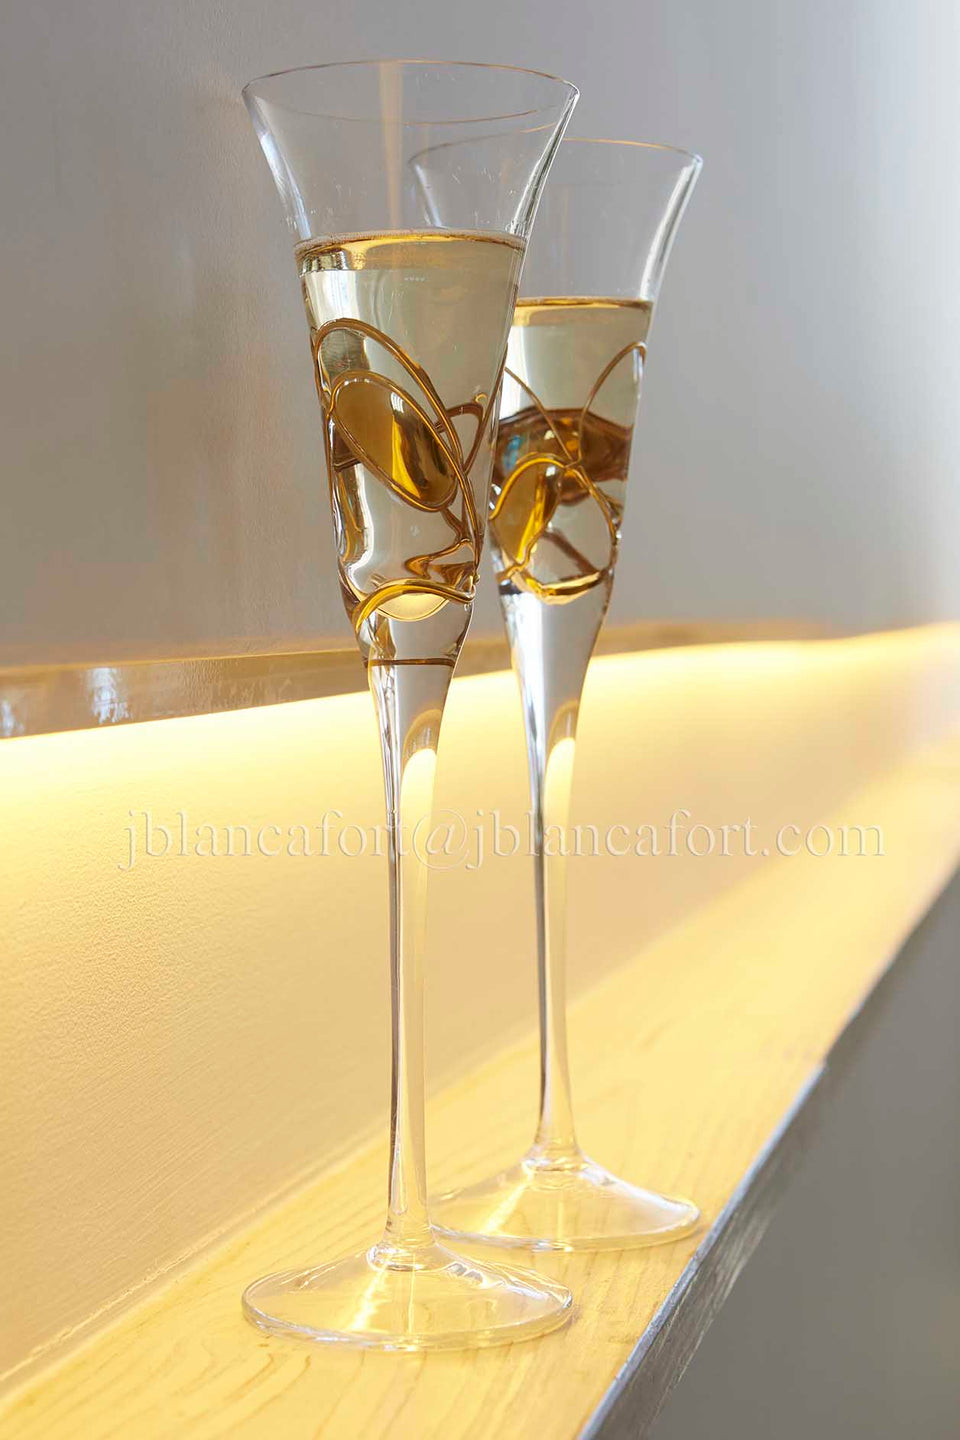 'BARCLEONA NIGHT' Gold Line, Champagne Flute